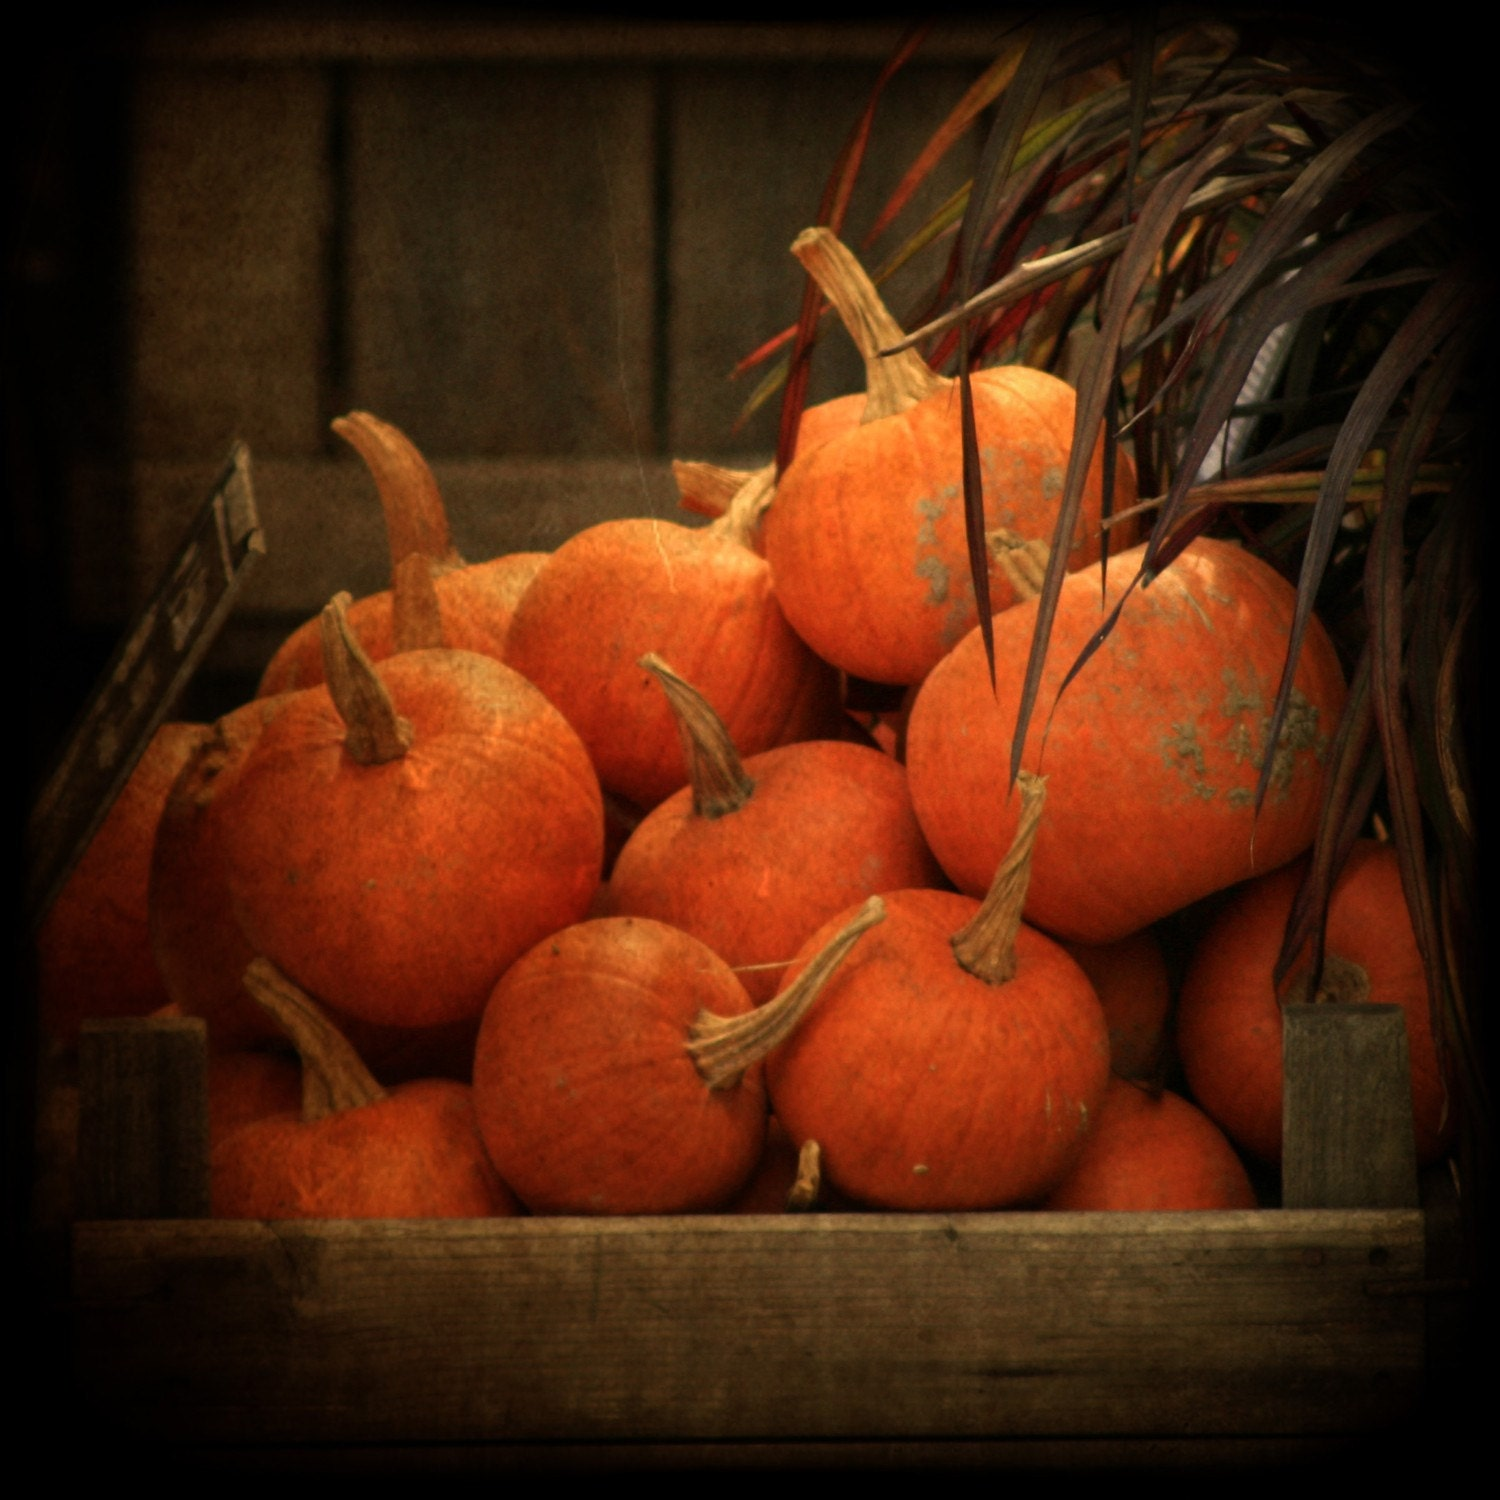 Pumpkin Cart - nature fine art photography print 10x10 BOGO SALE